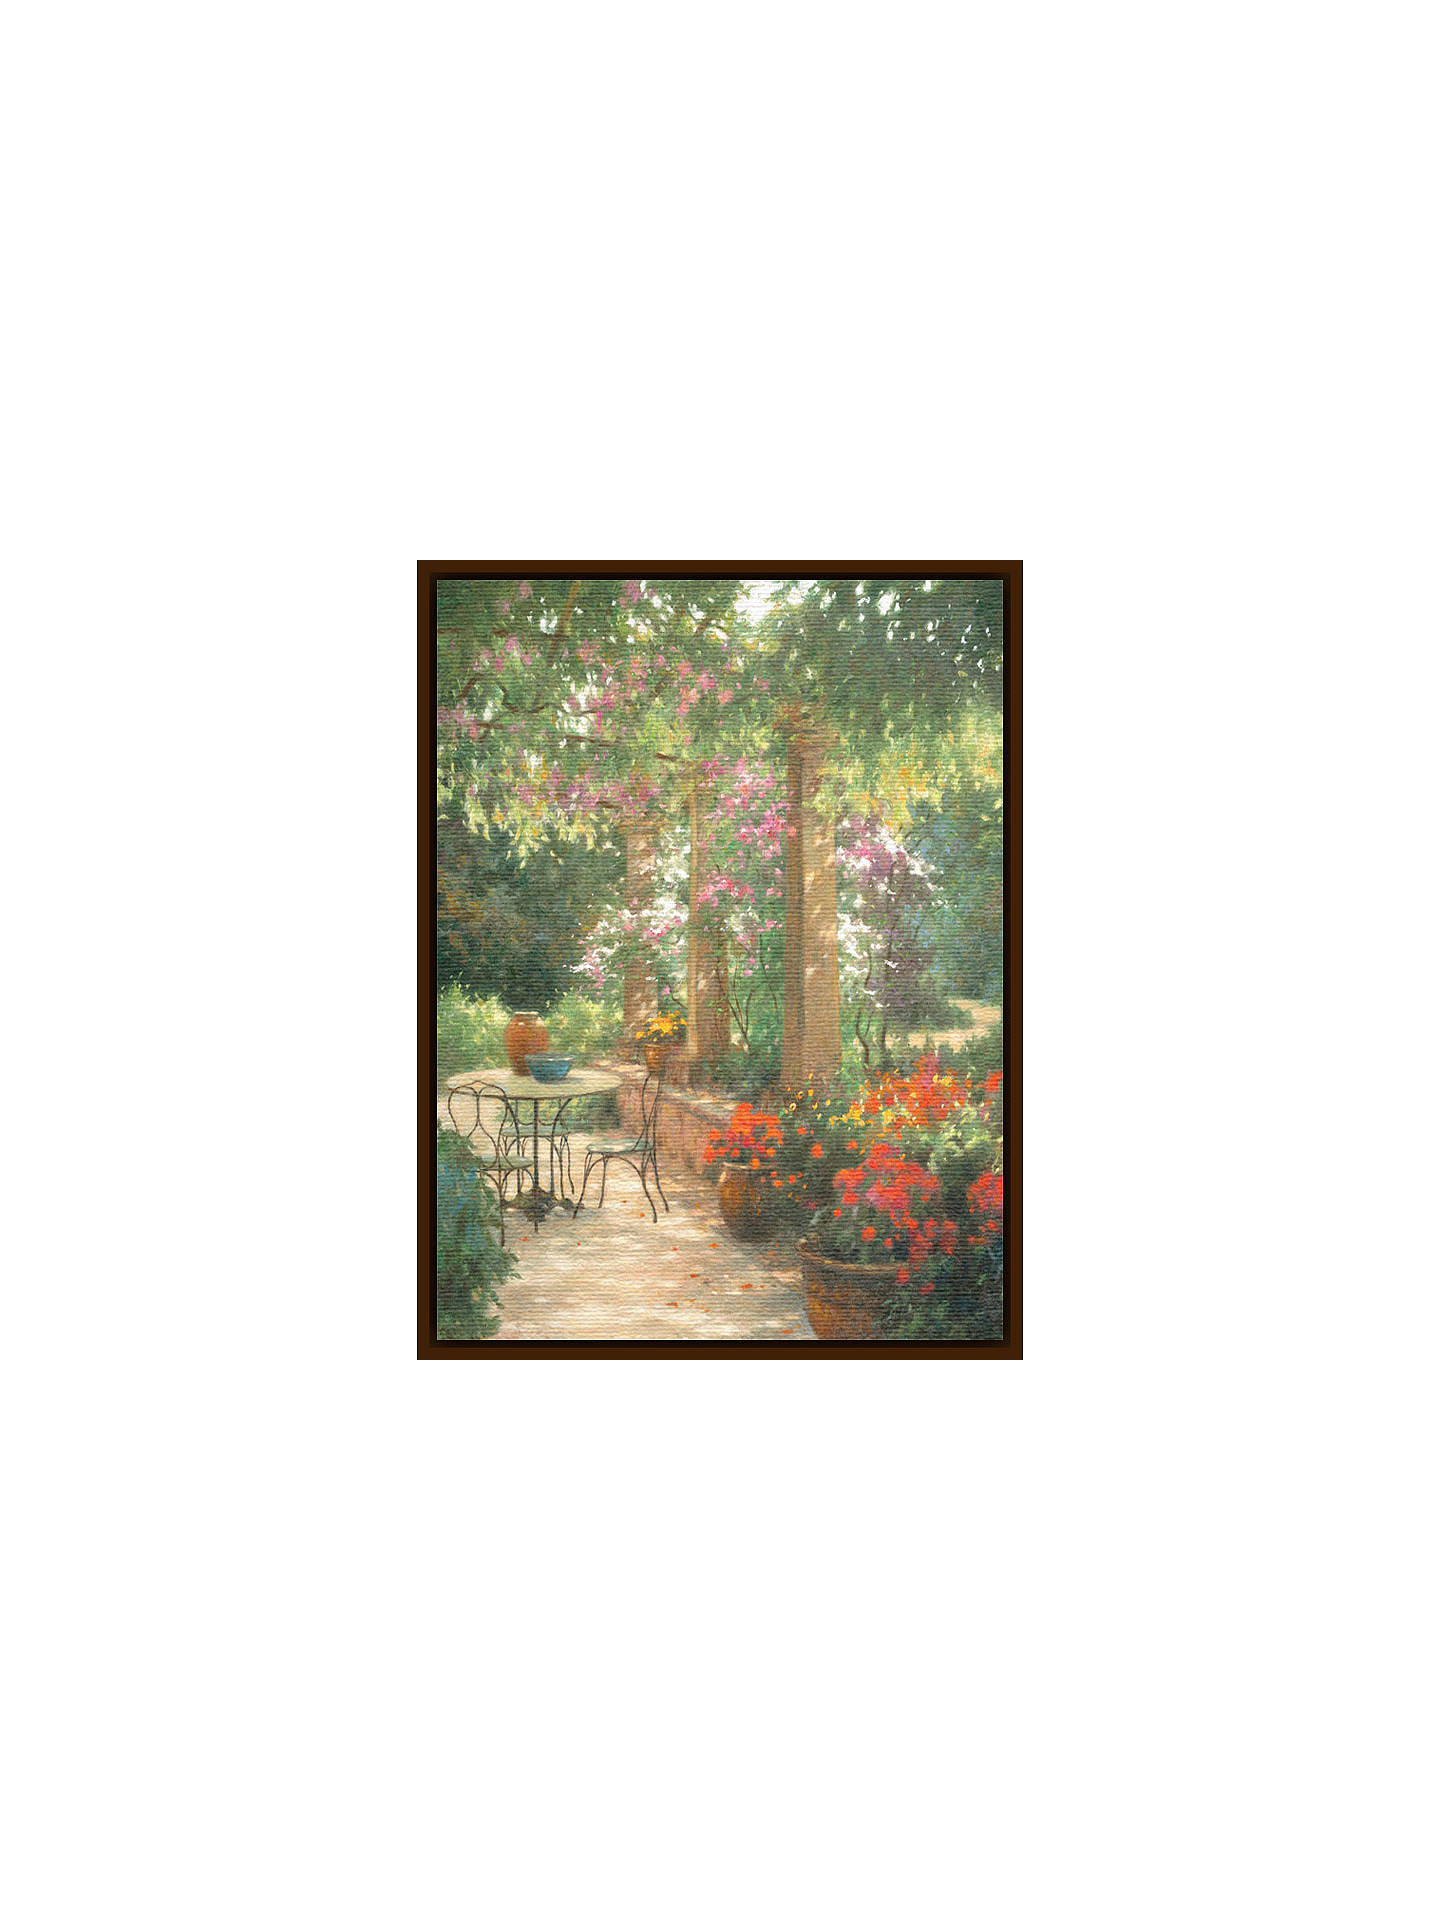 BuyAllan Myndzak - Under The Trellis, Dark Brown Framed Canvas, 82 x 110cm Online at johnlewis.com